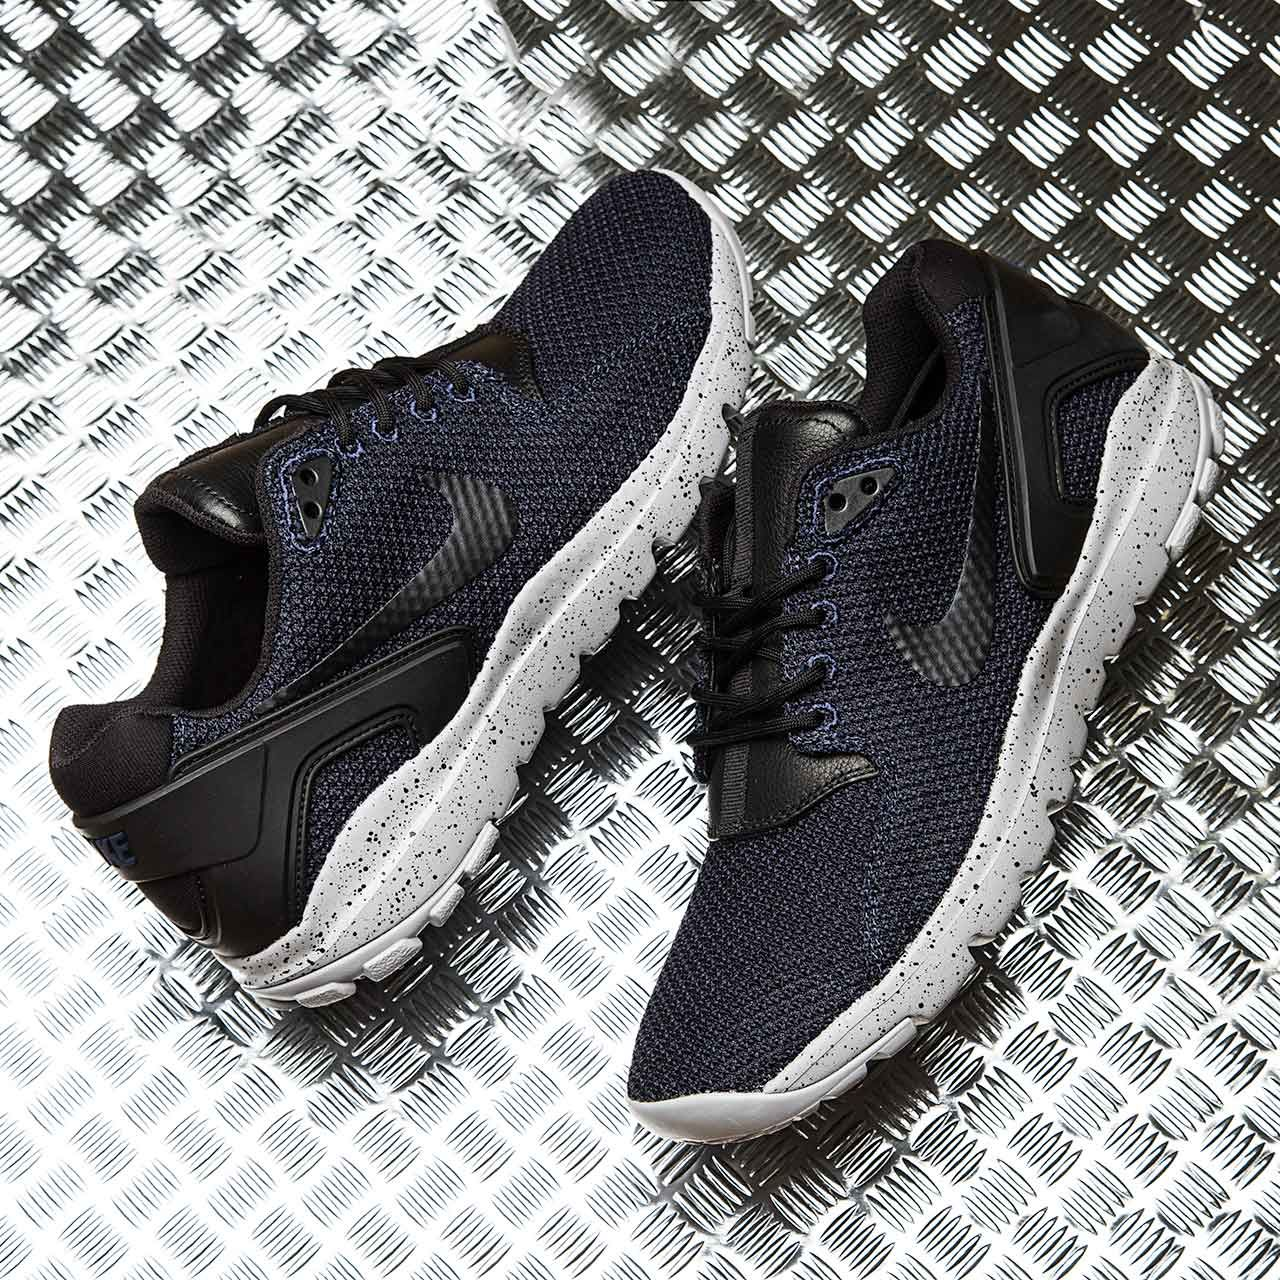 New In - The Nike Koth Ultra Trainer in Navy, Grey & Black ...